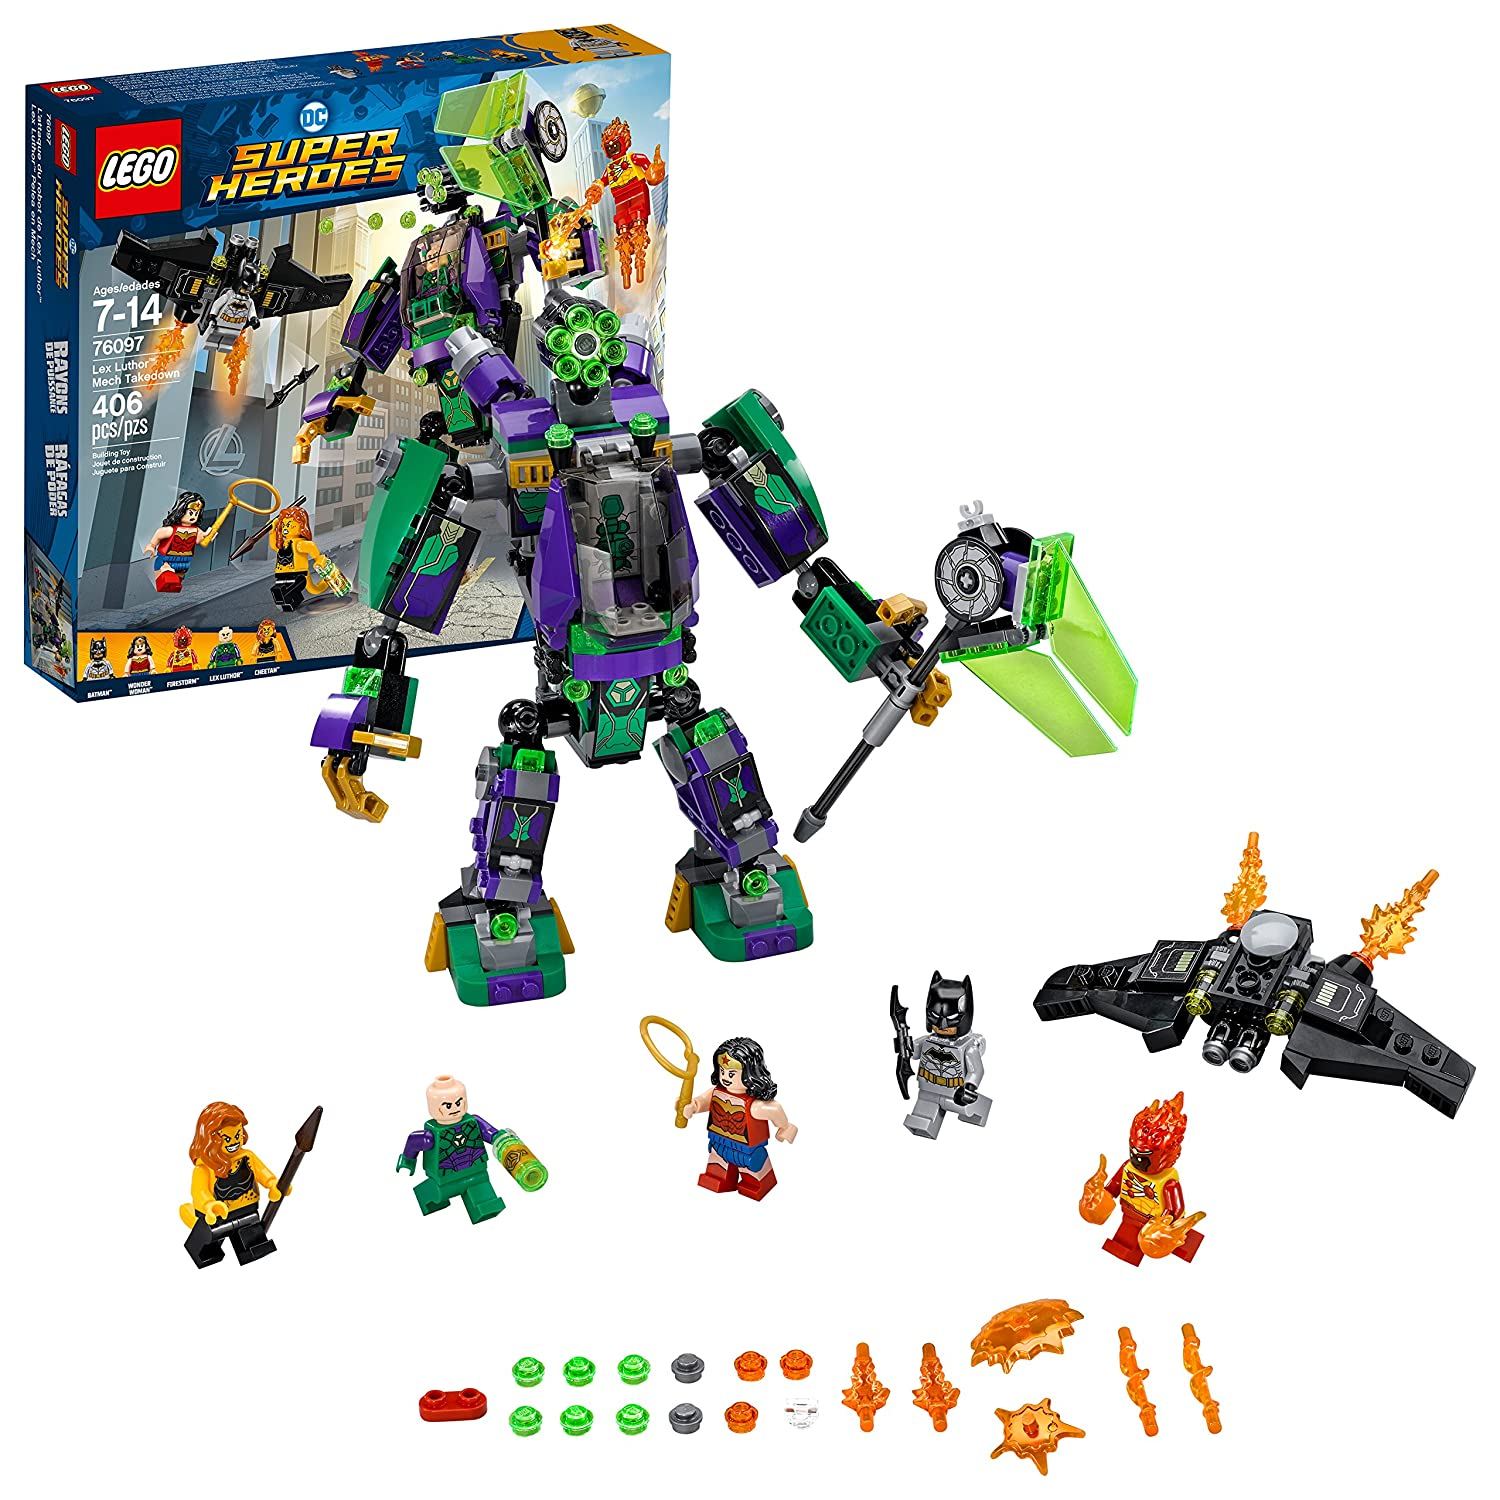 LEGO Superheroes 6212664 Lex Luthor Mech Takedown 76097 Building Kit (406 Piece)